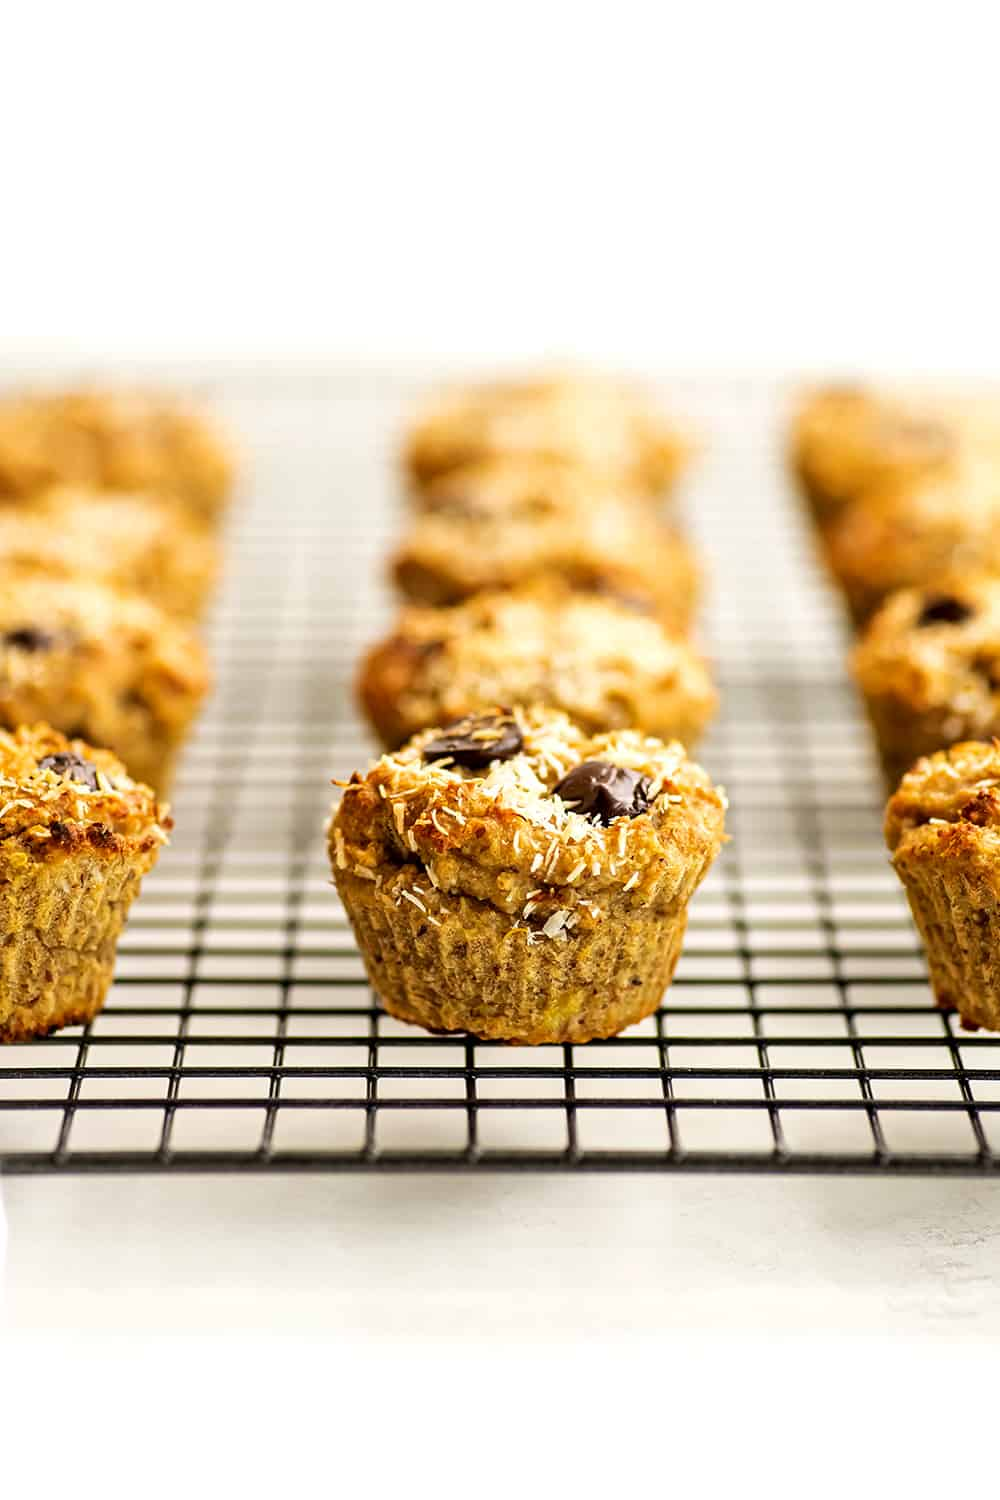 Quinoa banana muffins cooling on a wire cooling rack.